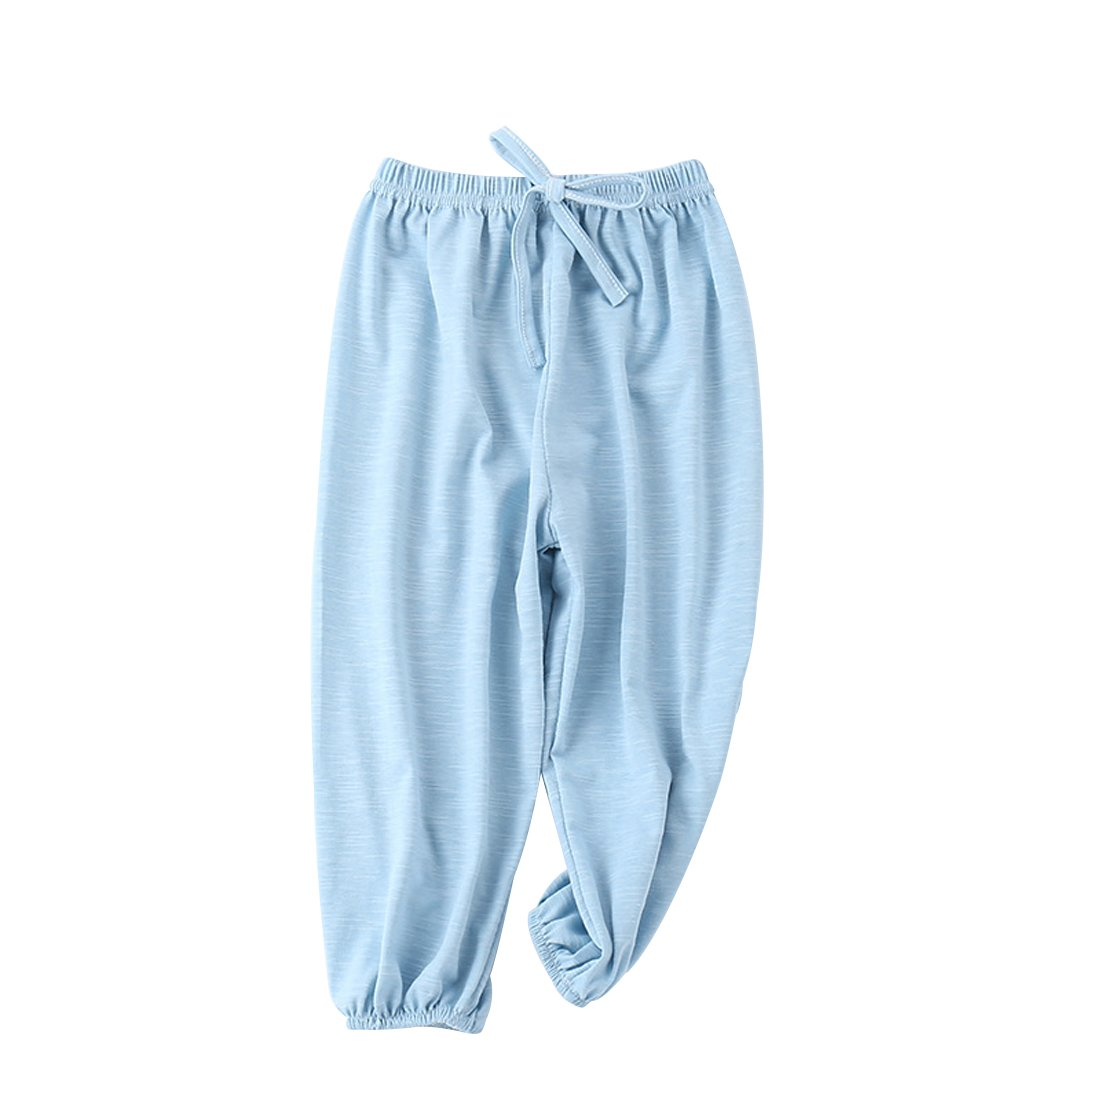 PAUBOLI Baby Long Bloomers Soft Slub Cotton Harem Pants for Boys Girls 12M-7T